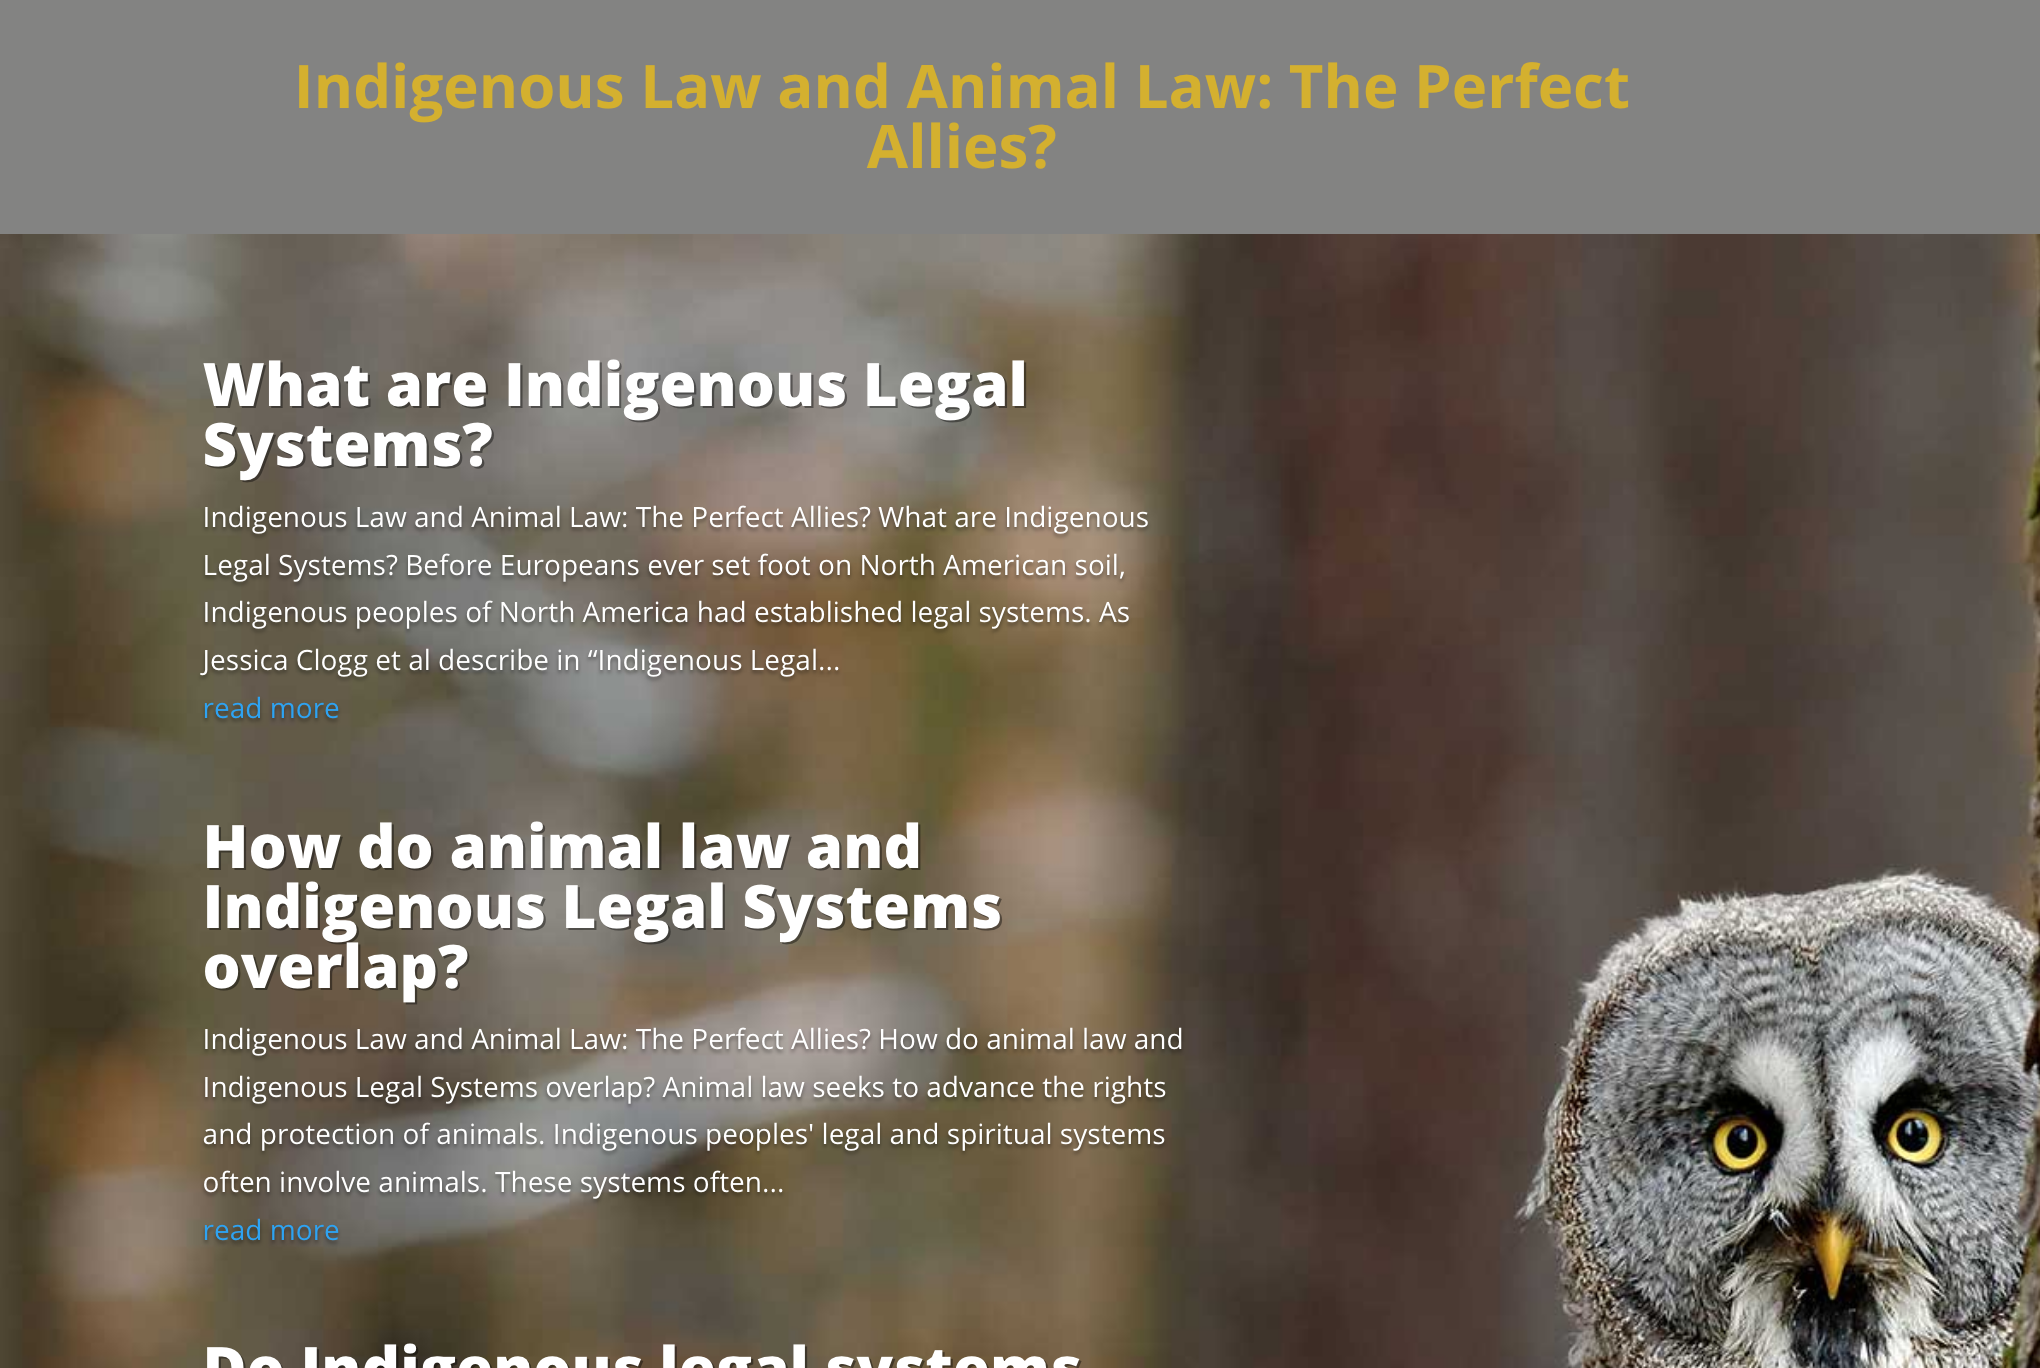 Animal Law and Indigenous Law: The Perfect Allies?